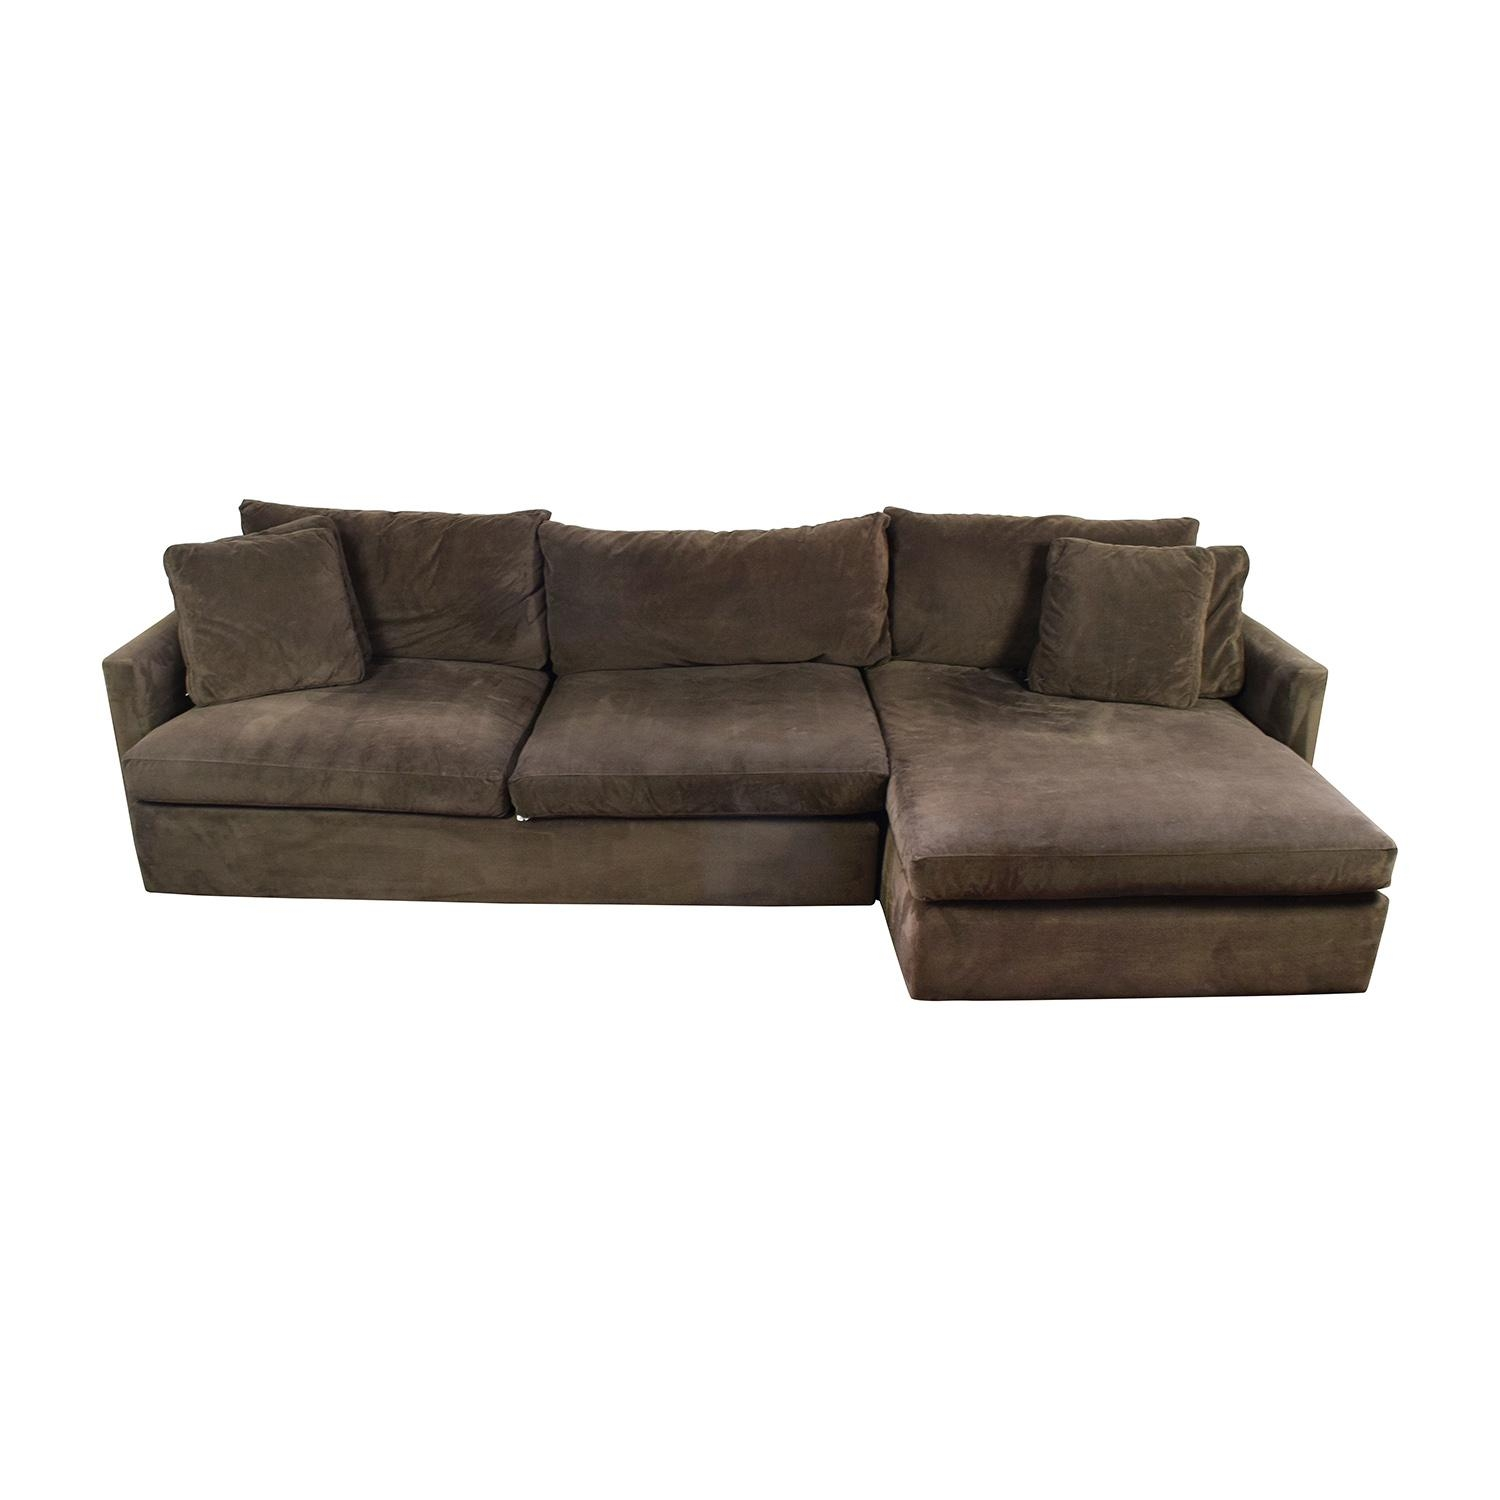 89% Off – Crate And Barrel Crate & Barrel Brown Left Arm Sectional Intended For Sectional Crate And Barrel (Image 7 of 20)